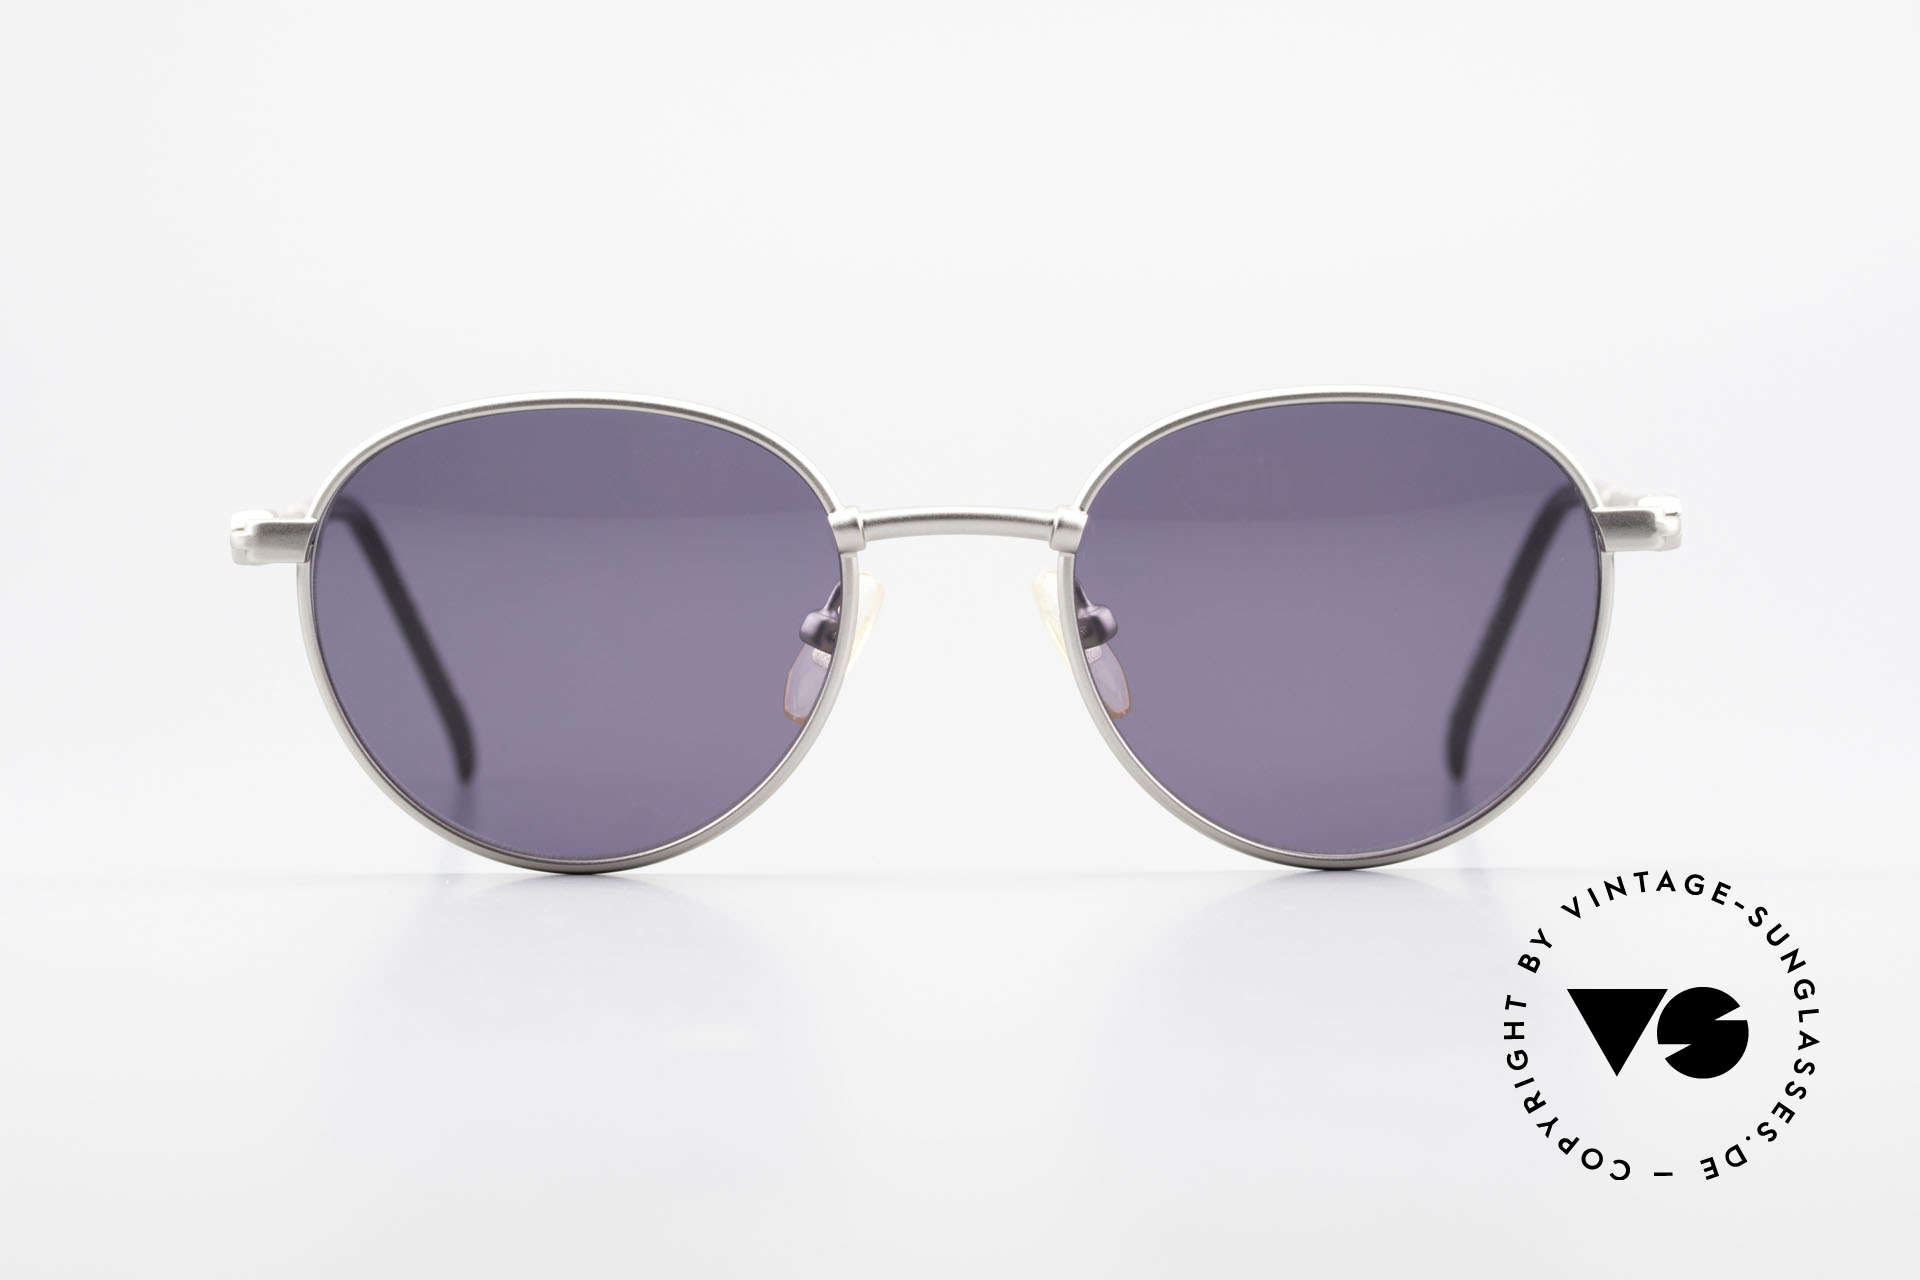 Yohji Yamamoto 52-4102 90's Panto Designer Sunglasses, rather a plain design by the Japanese fashion designer, Made for Men and Women